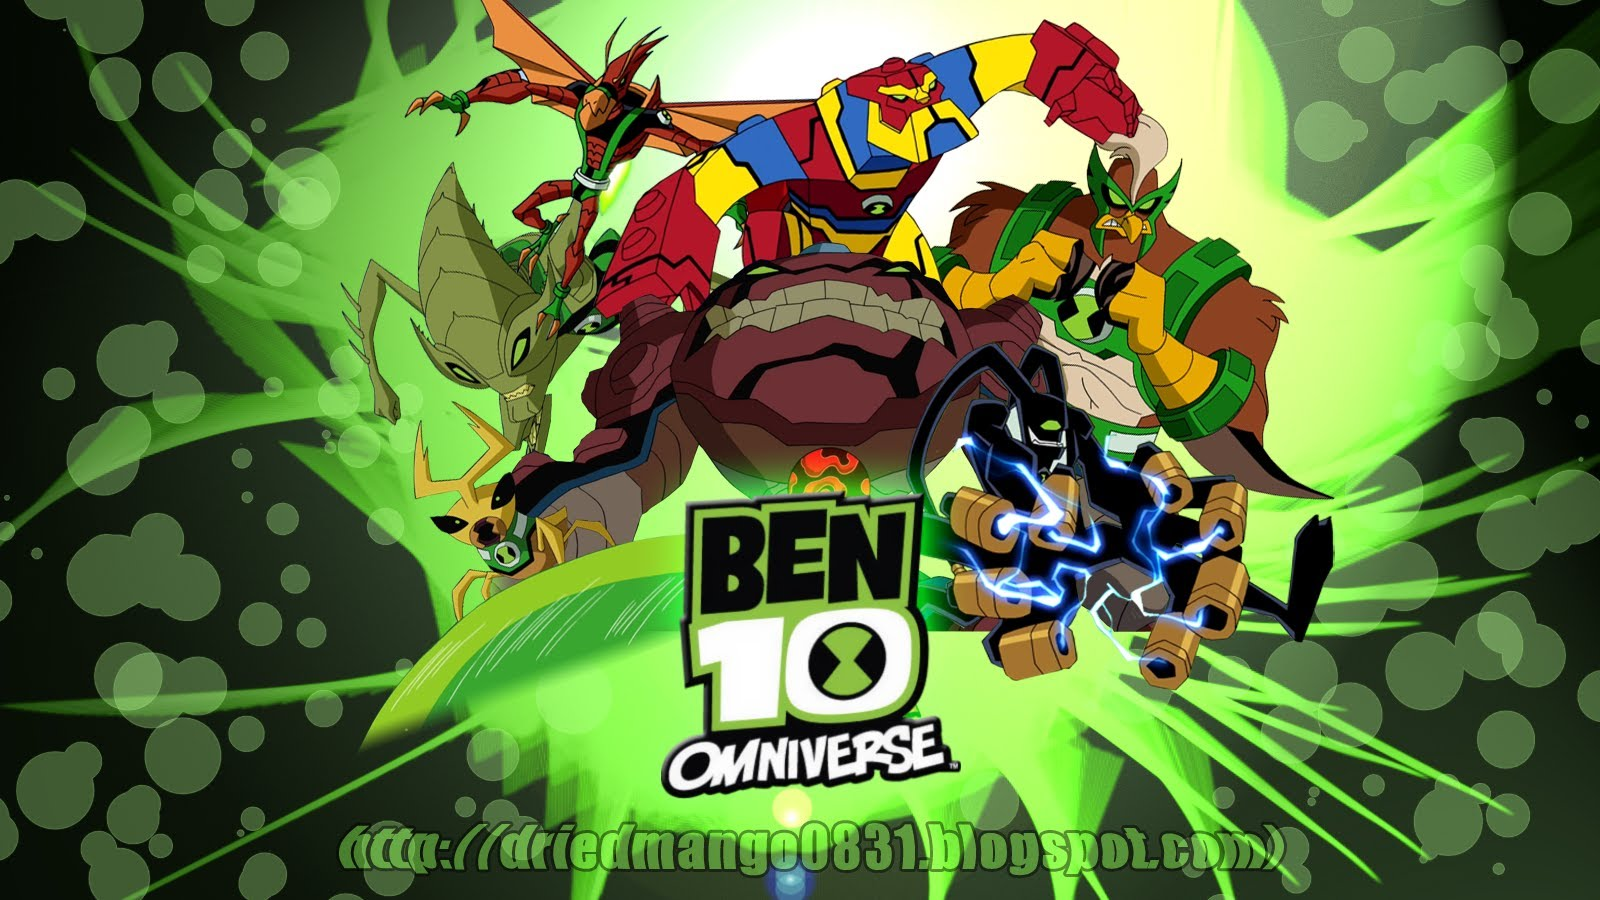 Ben 10 Omniverse Hindi Theme Song | MusicAnima